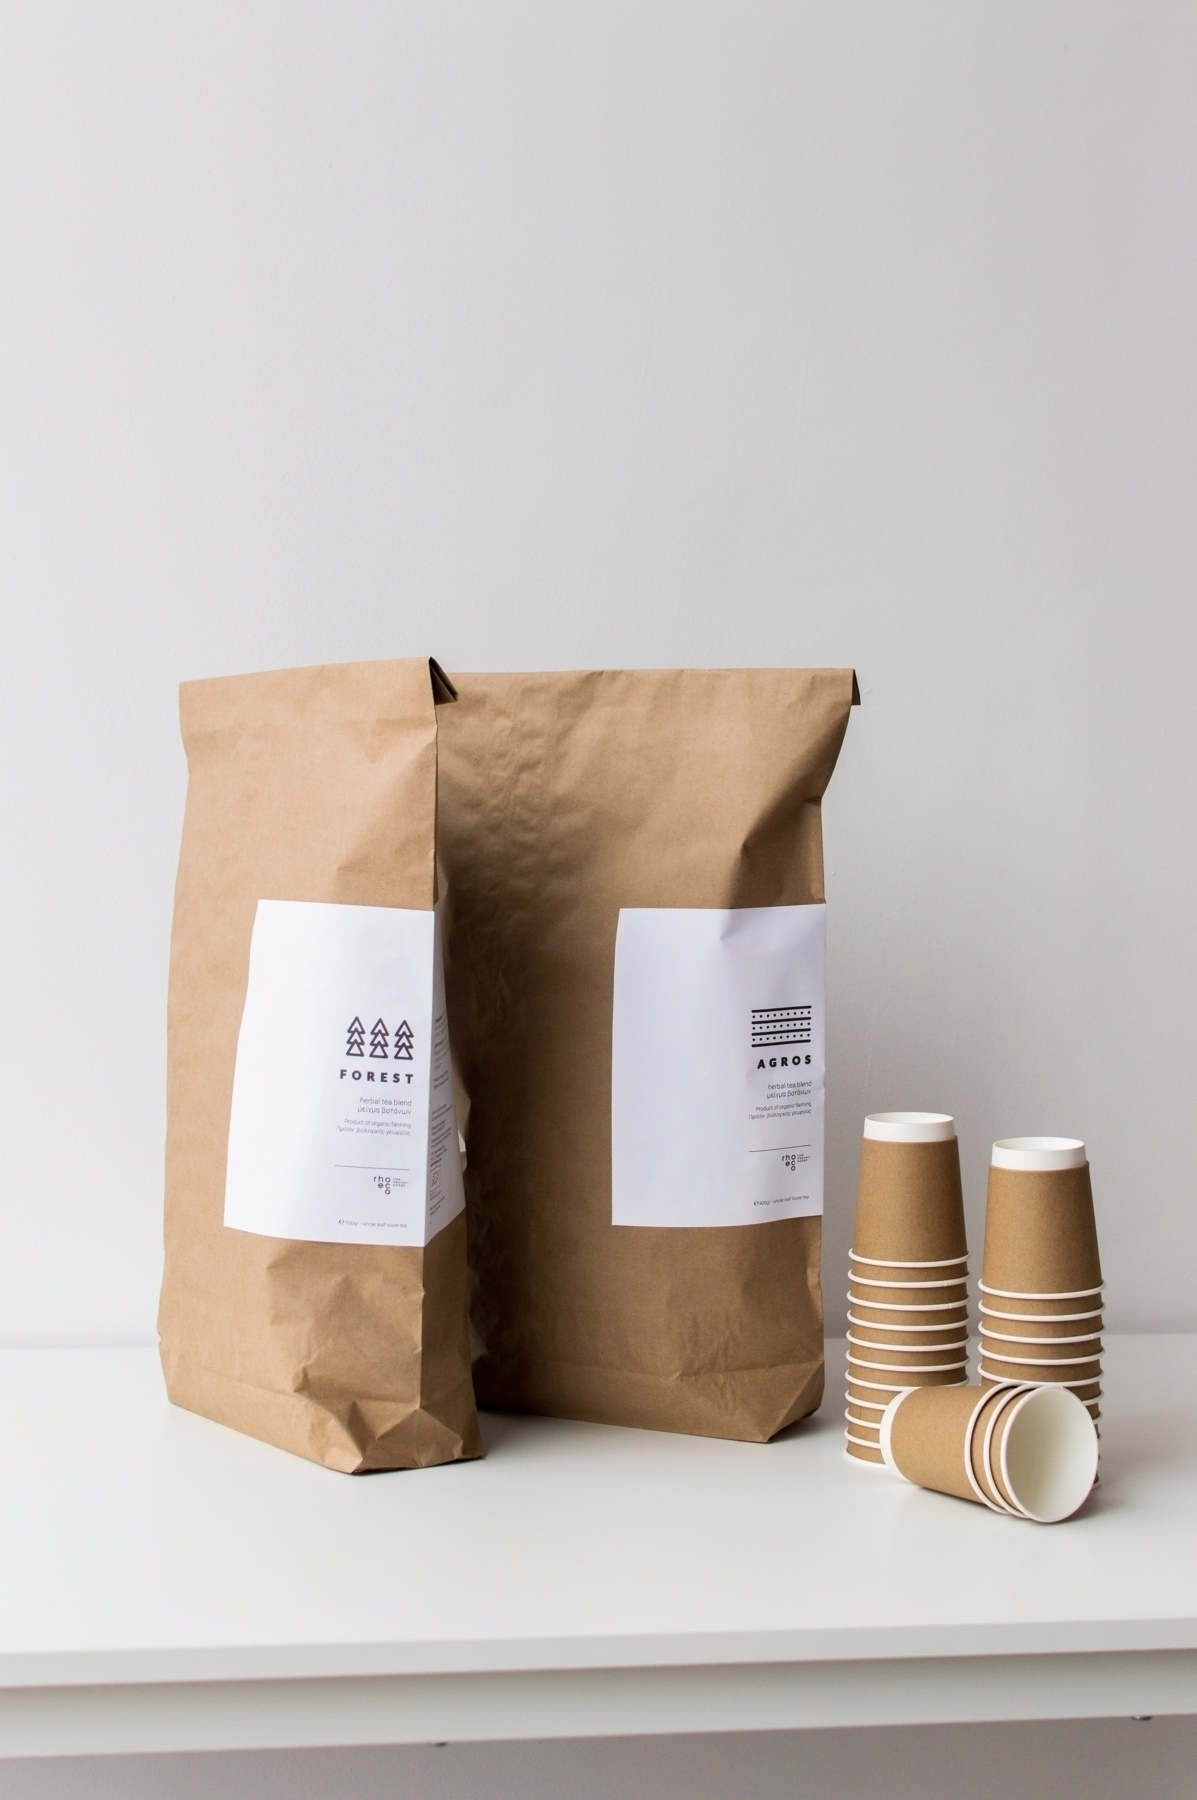 packages designed fit catering  - rhoeco_fineorganicgoods | ello